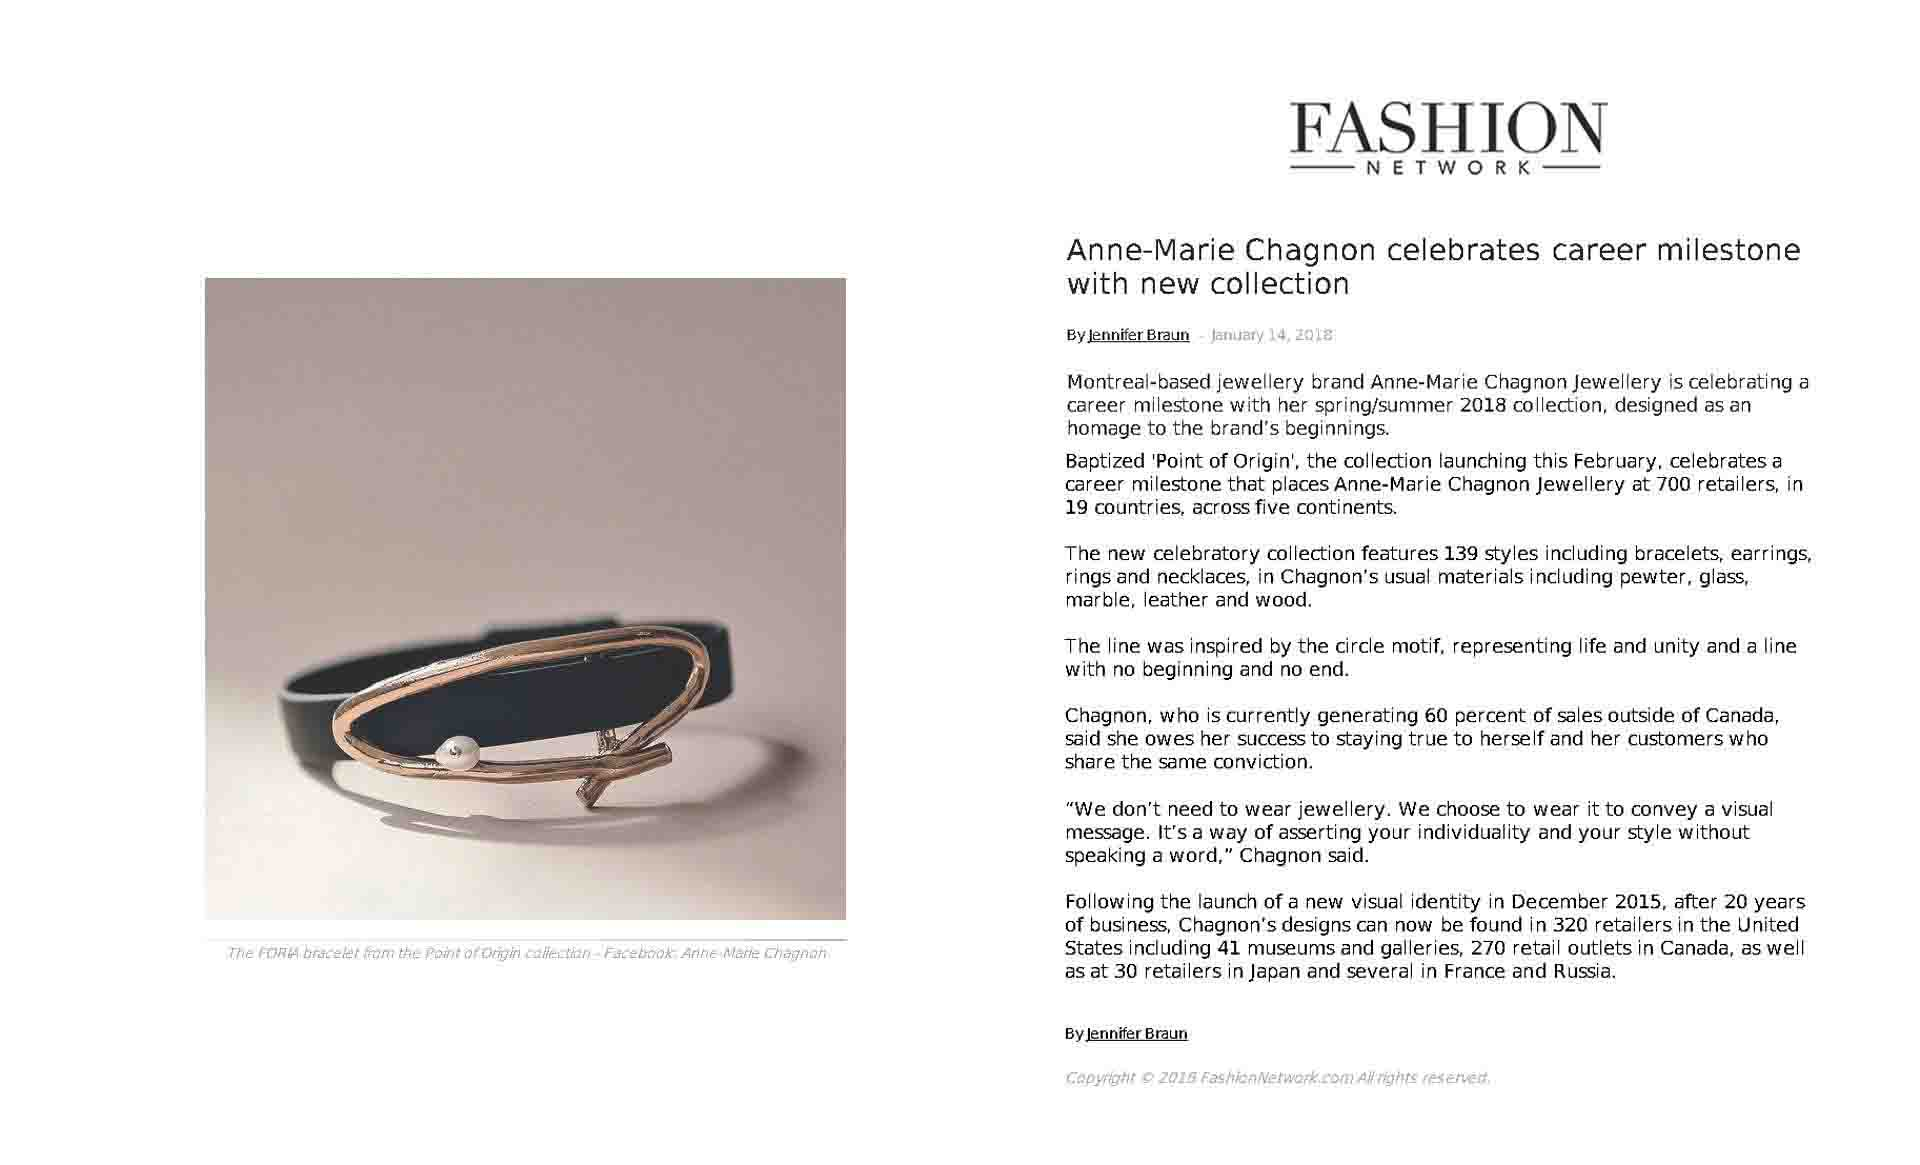 The POINT OF ORIGIN collection in the Fashion Network magazine